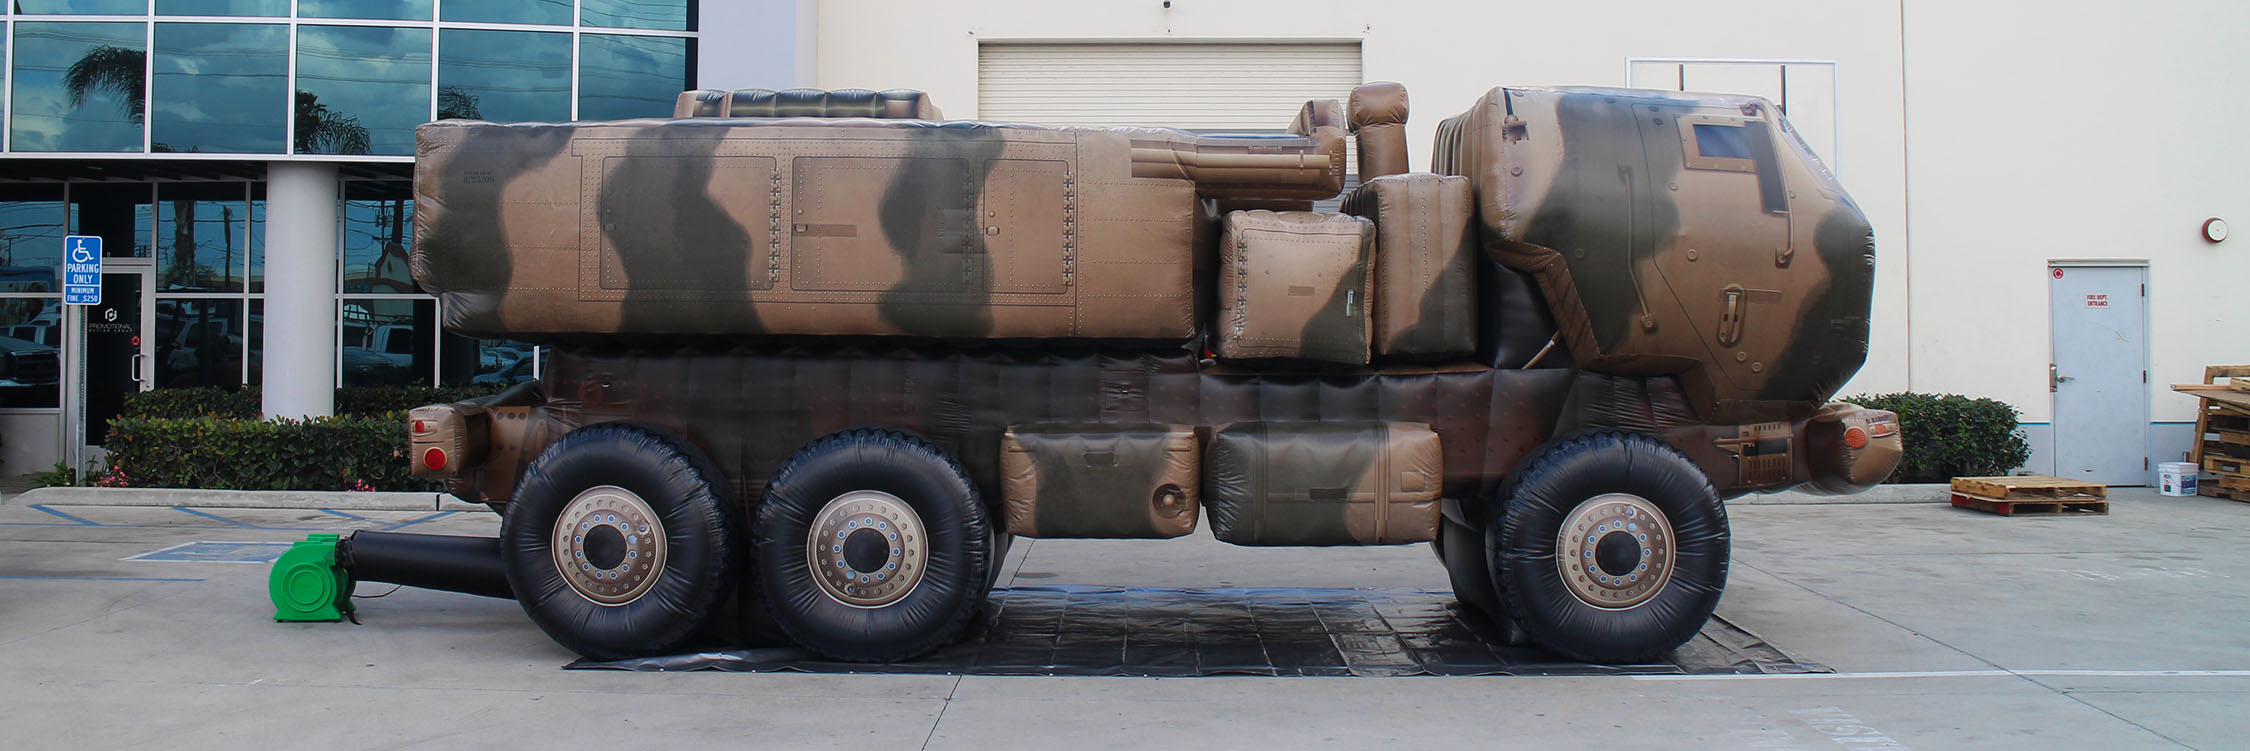 military-truck-replica-inflatable